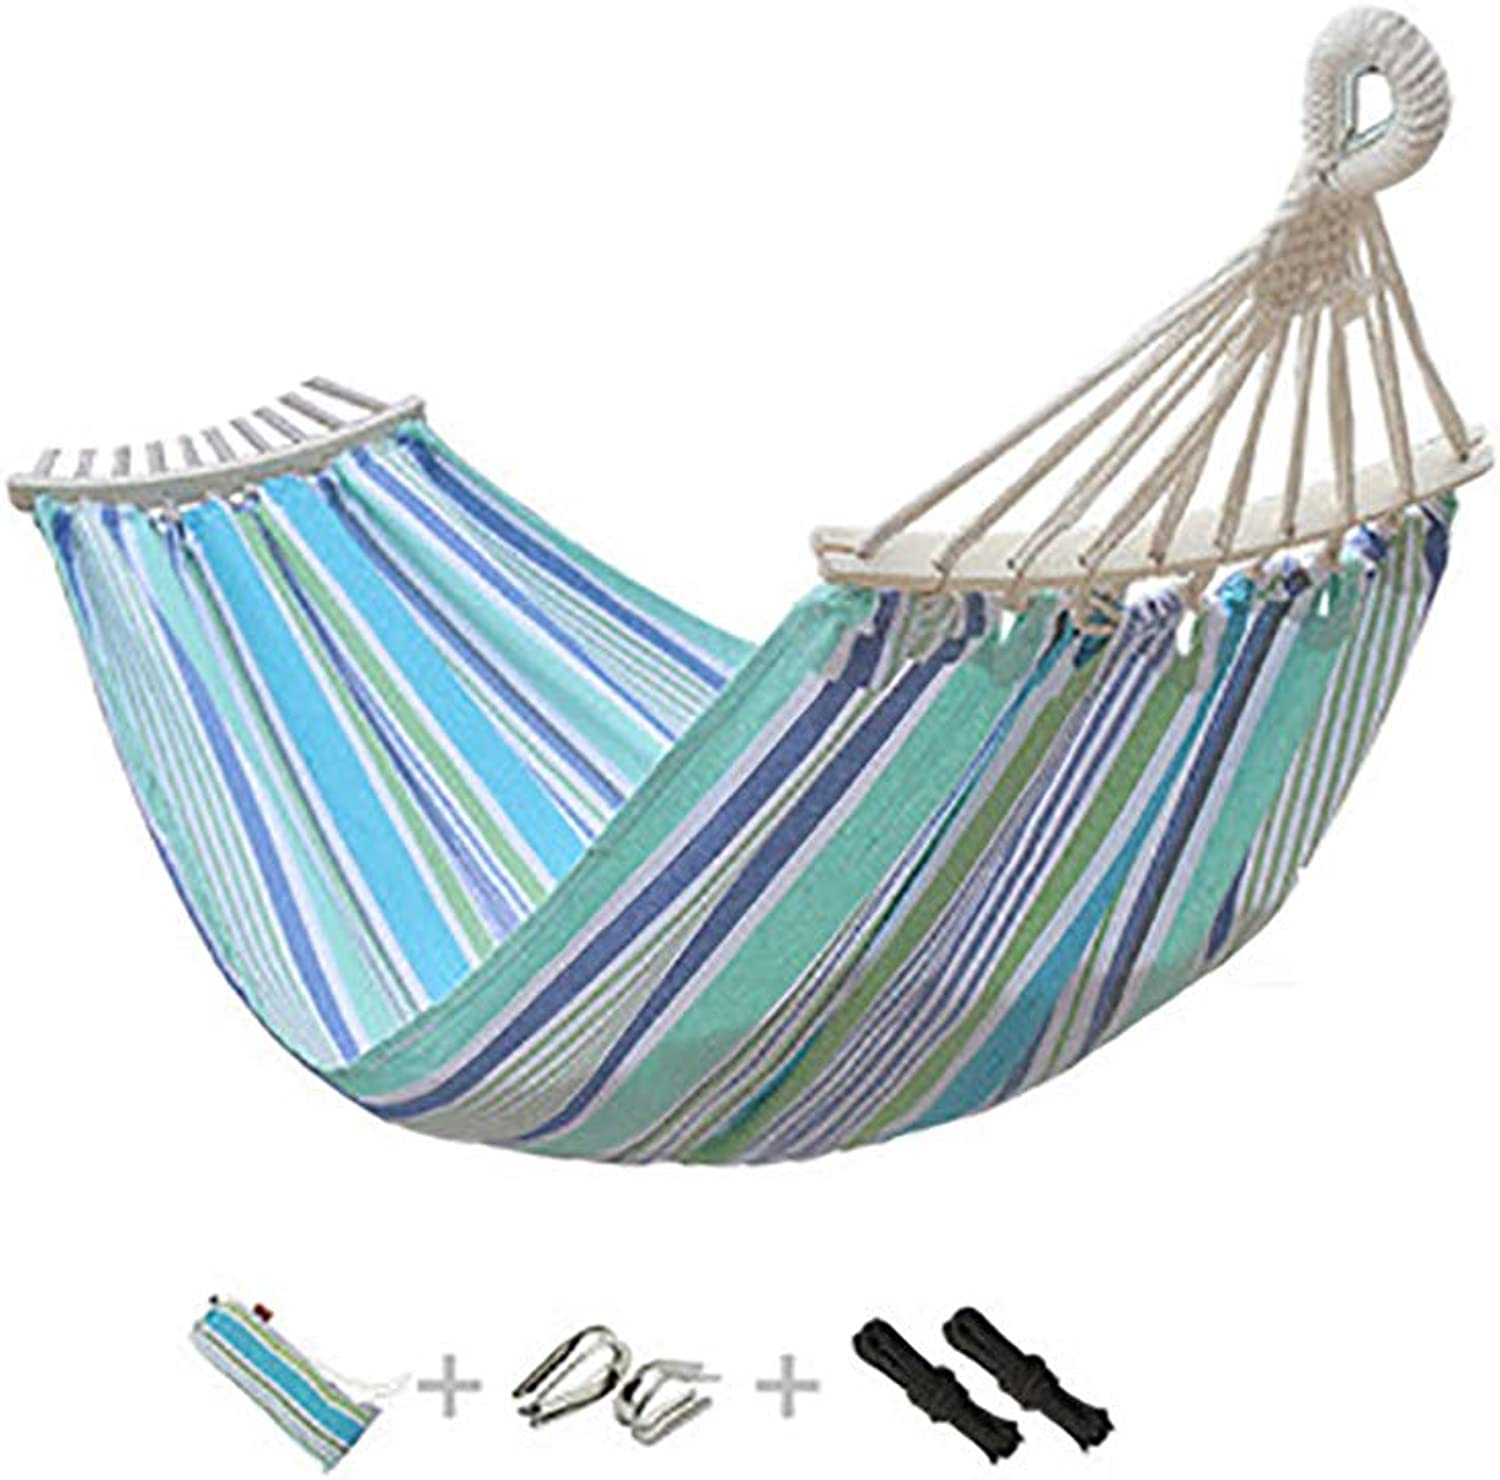 Outdoor Striped Camping Hammock, with Wooden Stick Canvas Portable Hanging Sheets, LoadBearing 150kg, Connecting Buckle Rope Storage Bag, for Travel Beach Garden